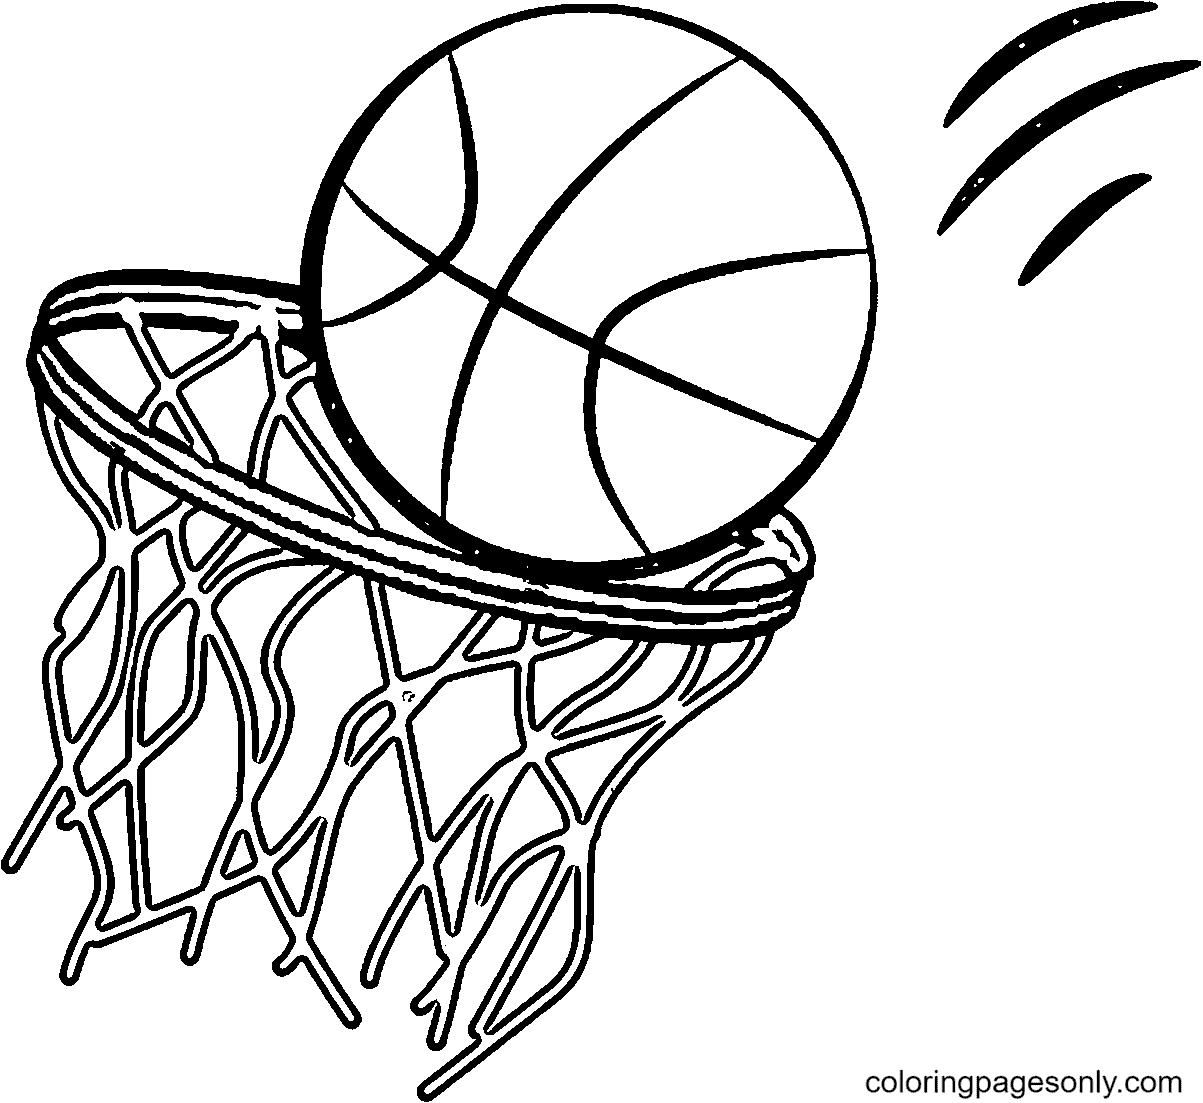 The Ball is Thrown into the Basket Coloring Page